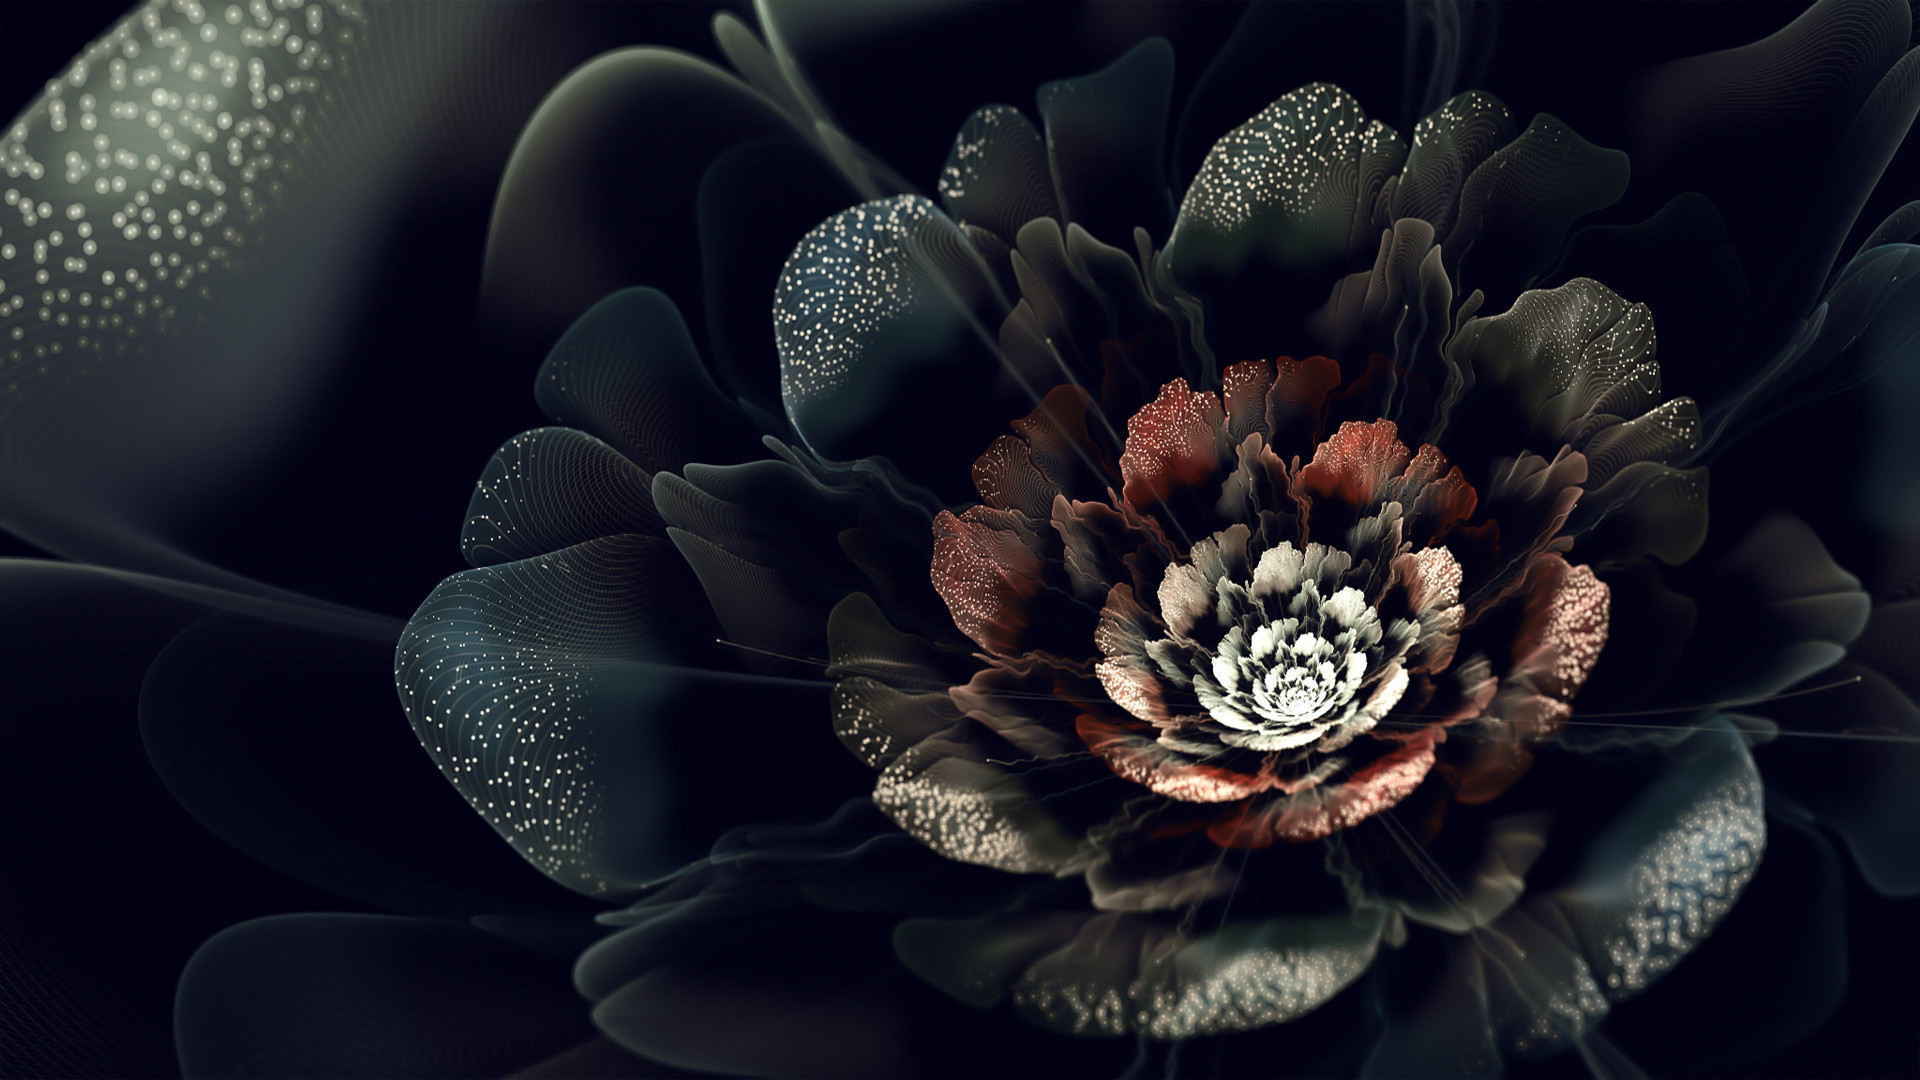 Black Rose Computer Wallpaper